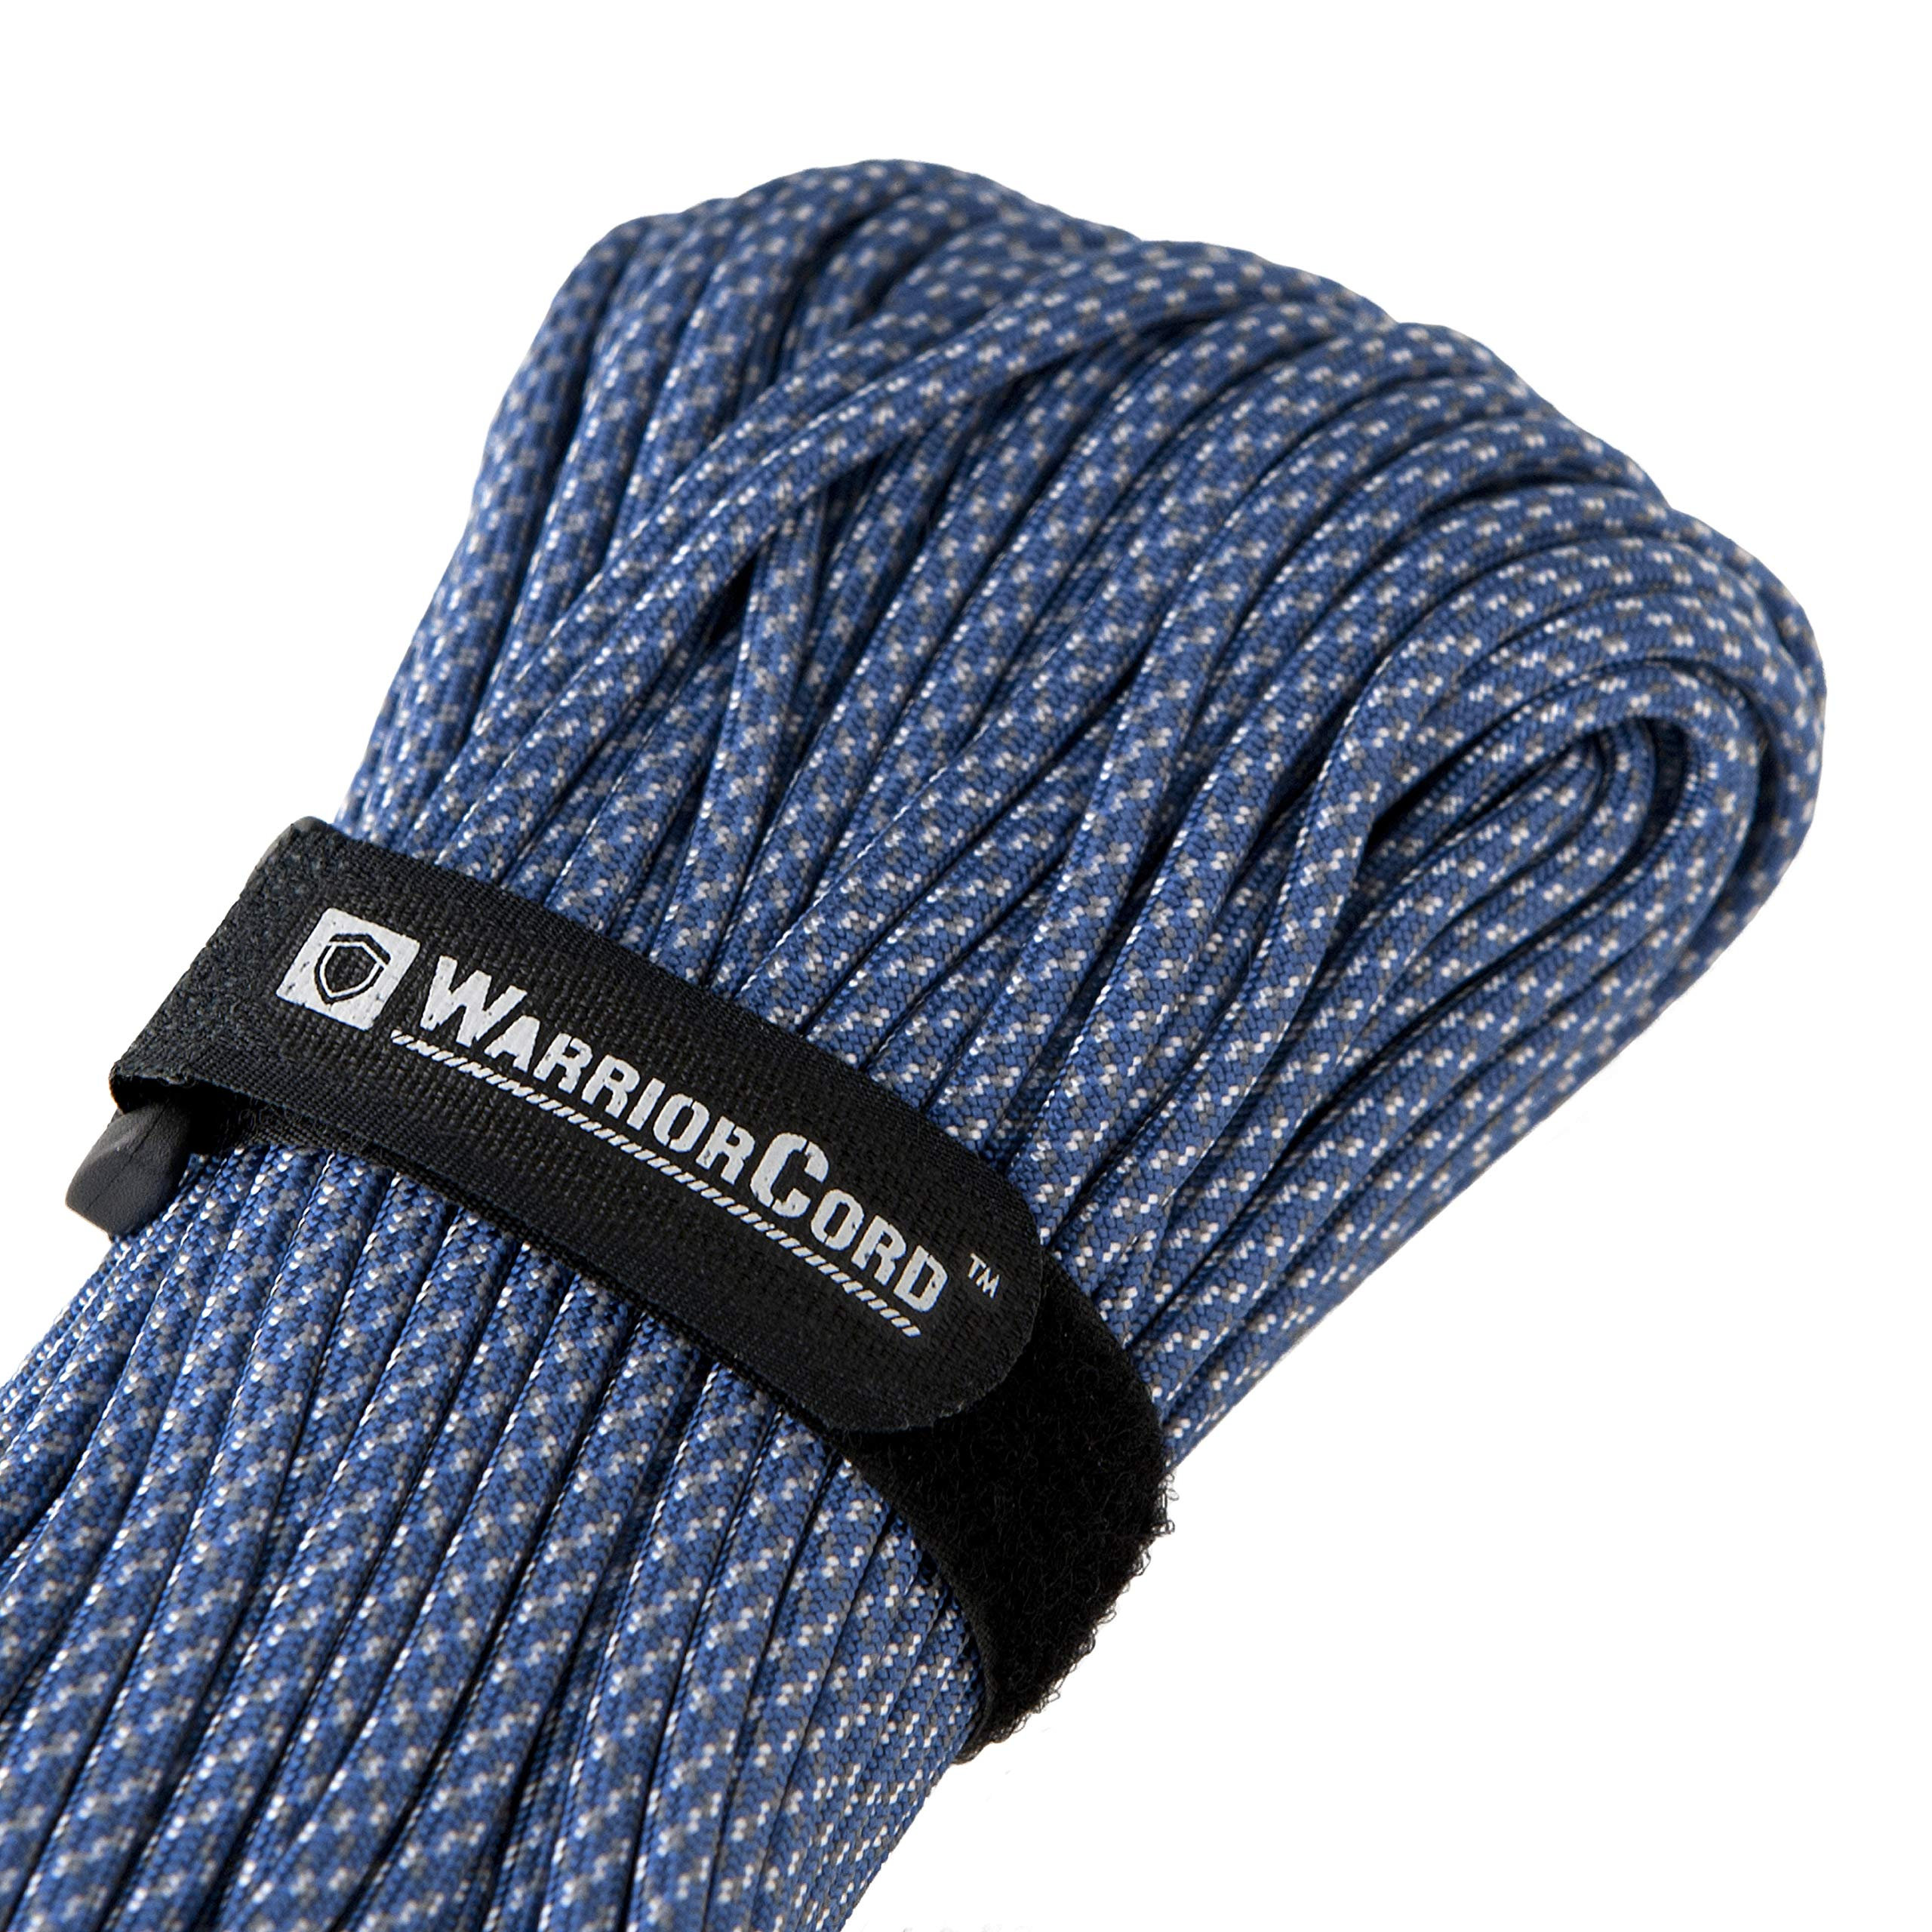 Titan WarriorCord | DIGI-Blue | 103 Continuous FEET | Exceeds Authentic MIL-C-5040, Type III 550 Paracord Standards. 7 Strand, 5/32'' (4mm) Diameter, Military Parachute Cord. by Titan Paracord (Image #1)